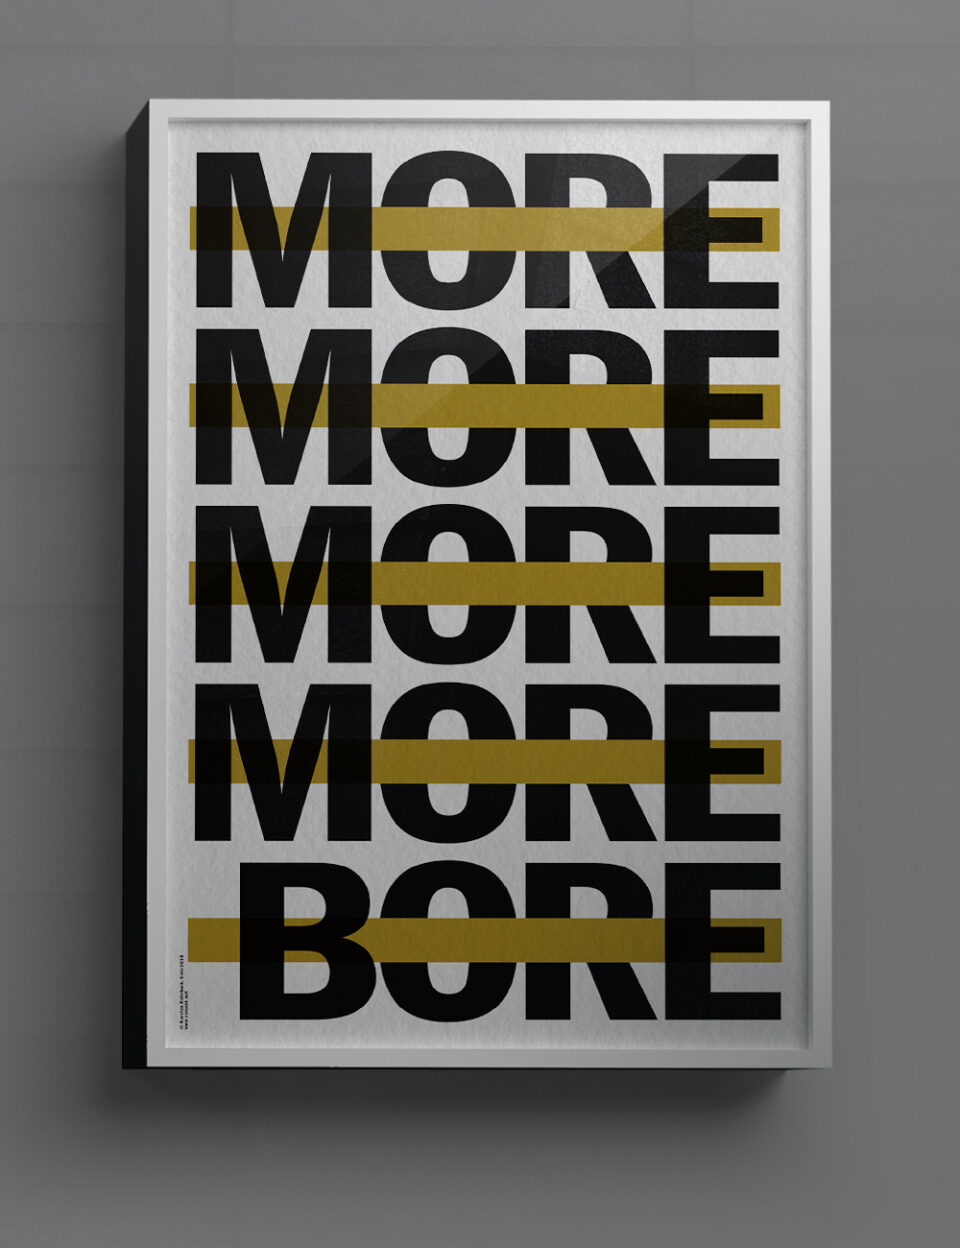 Karsten Rohrbeck: More More More Bore Poster (free-mockup)